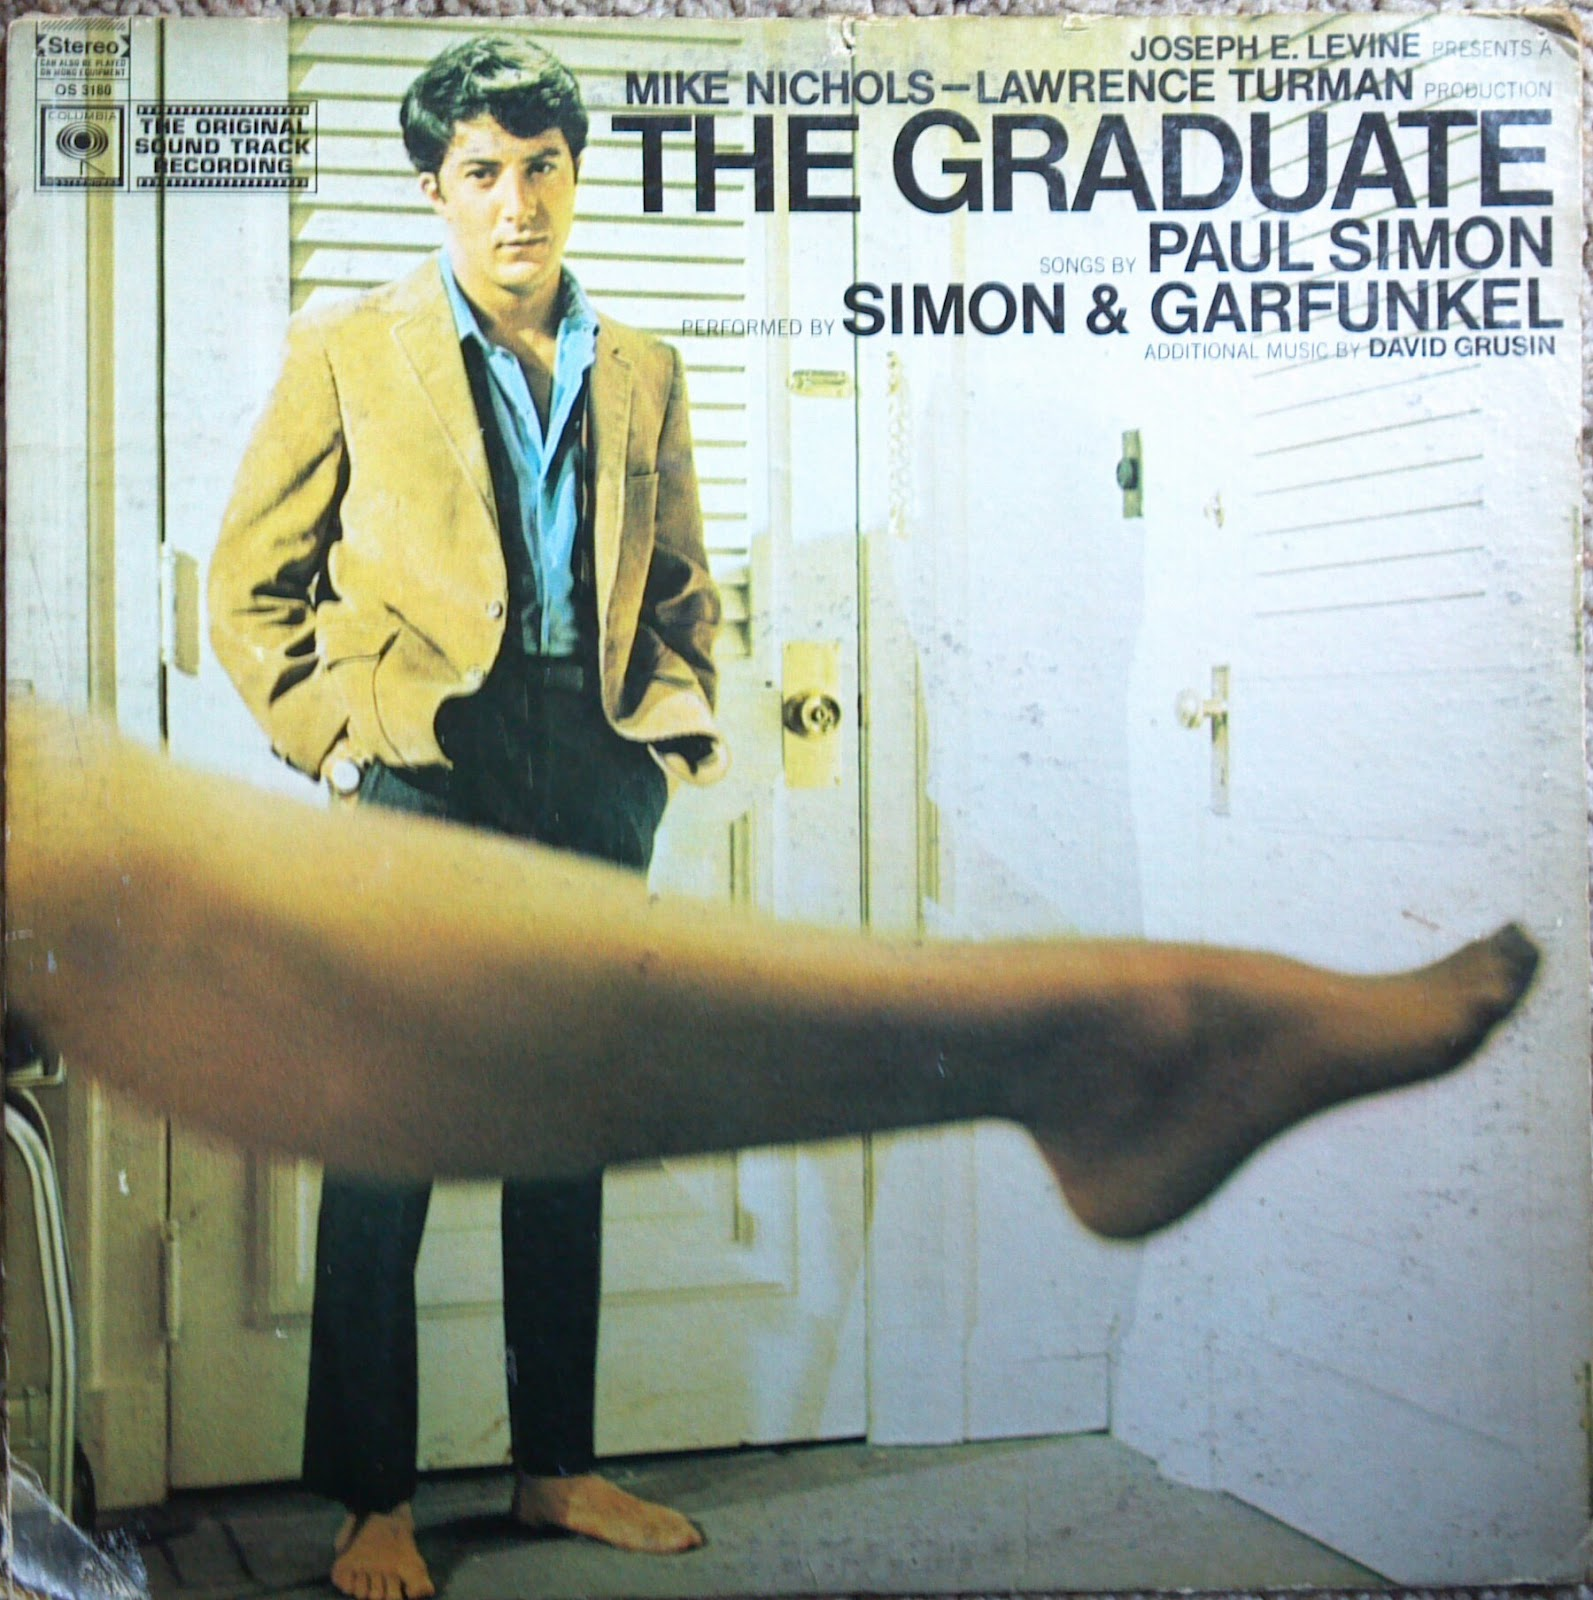 an analysis of filming techniques of mike nichols movie the graduate He often asked for several dozen retakes of the same scene in a movie,  stanley kubrick's  kubrick had been given a copy of the mike zwerin book swing.